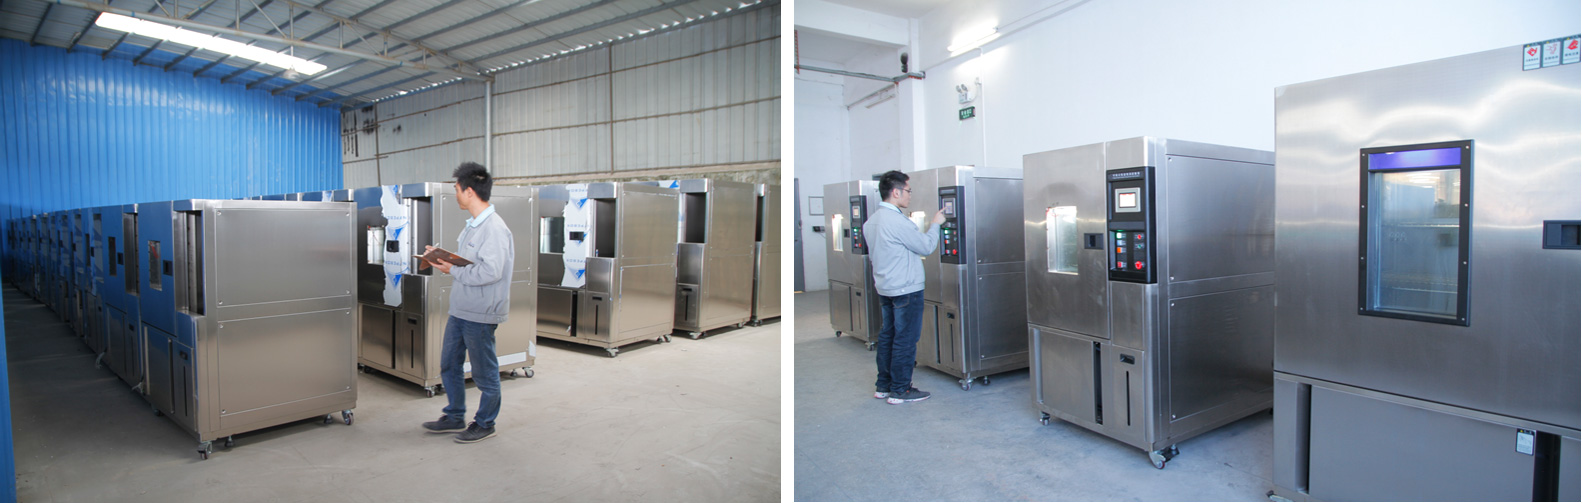 Quality - Wewon Environmental Chambers Co., Ltd.